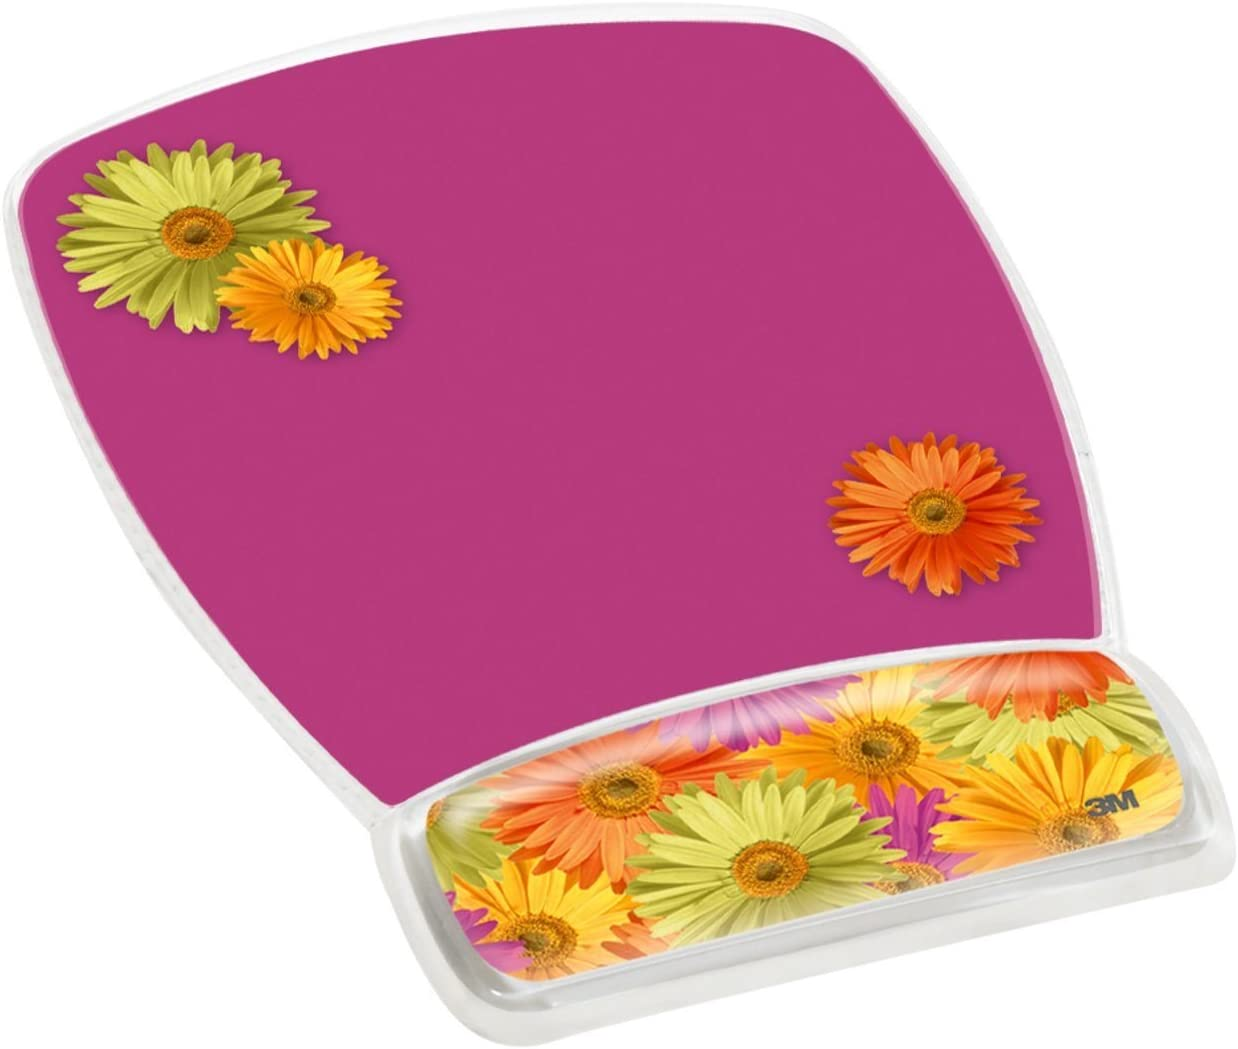 3M Precise Mouse Pad with Gel Wrist Rest, Soothing Gel Comfort with Durable, Easy to Clean Cover, Optical Mouse Performance, Fun Daisy Design (MW308DS)